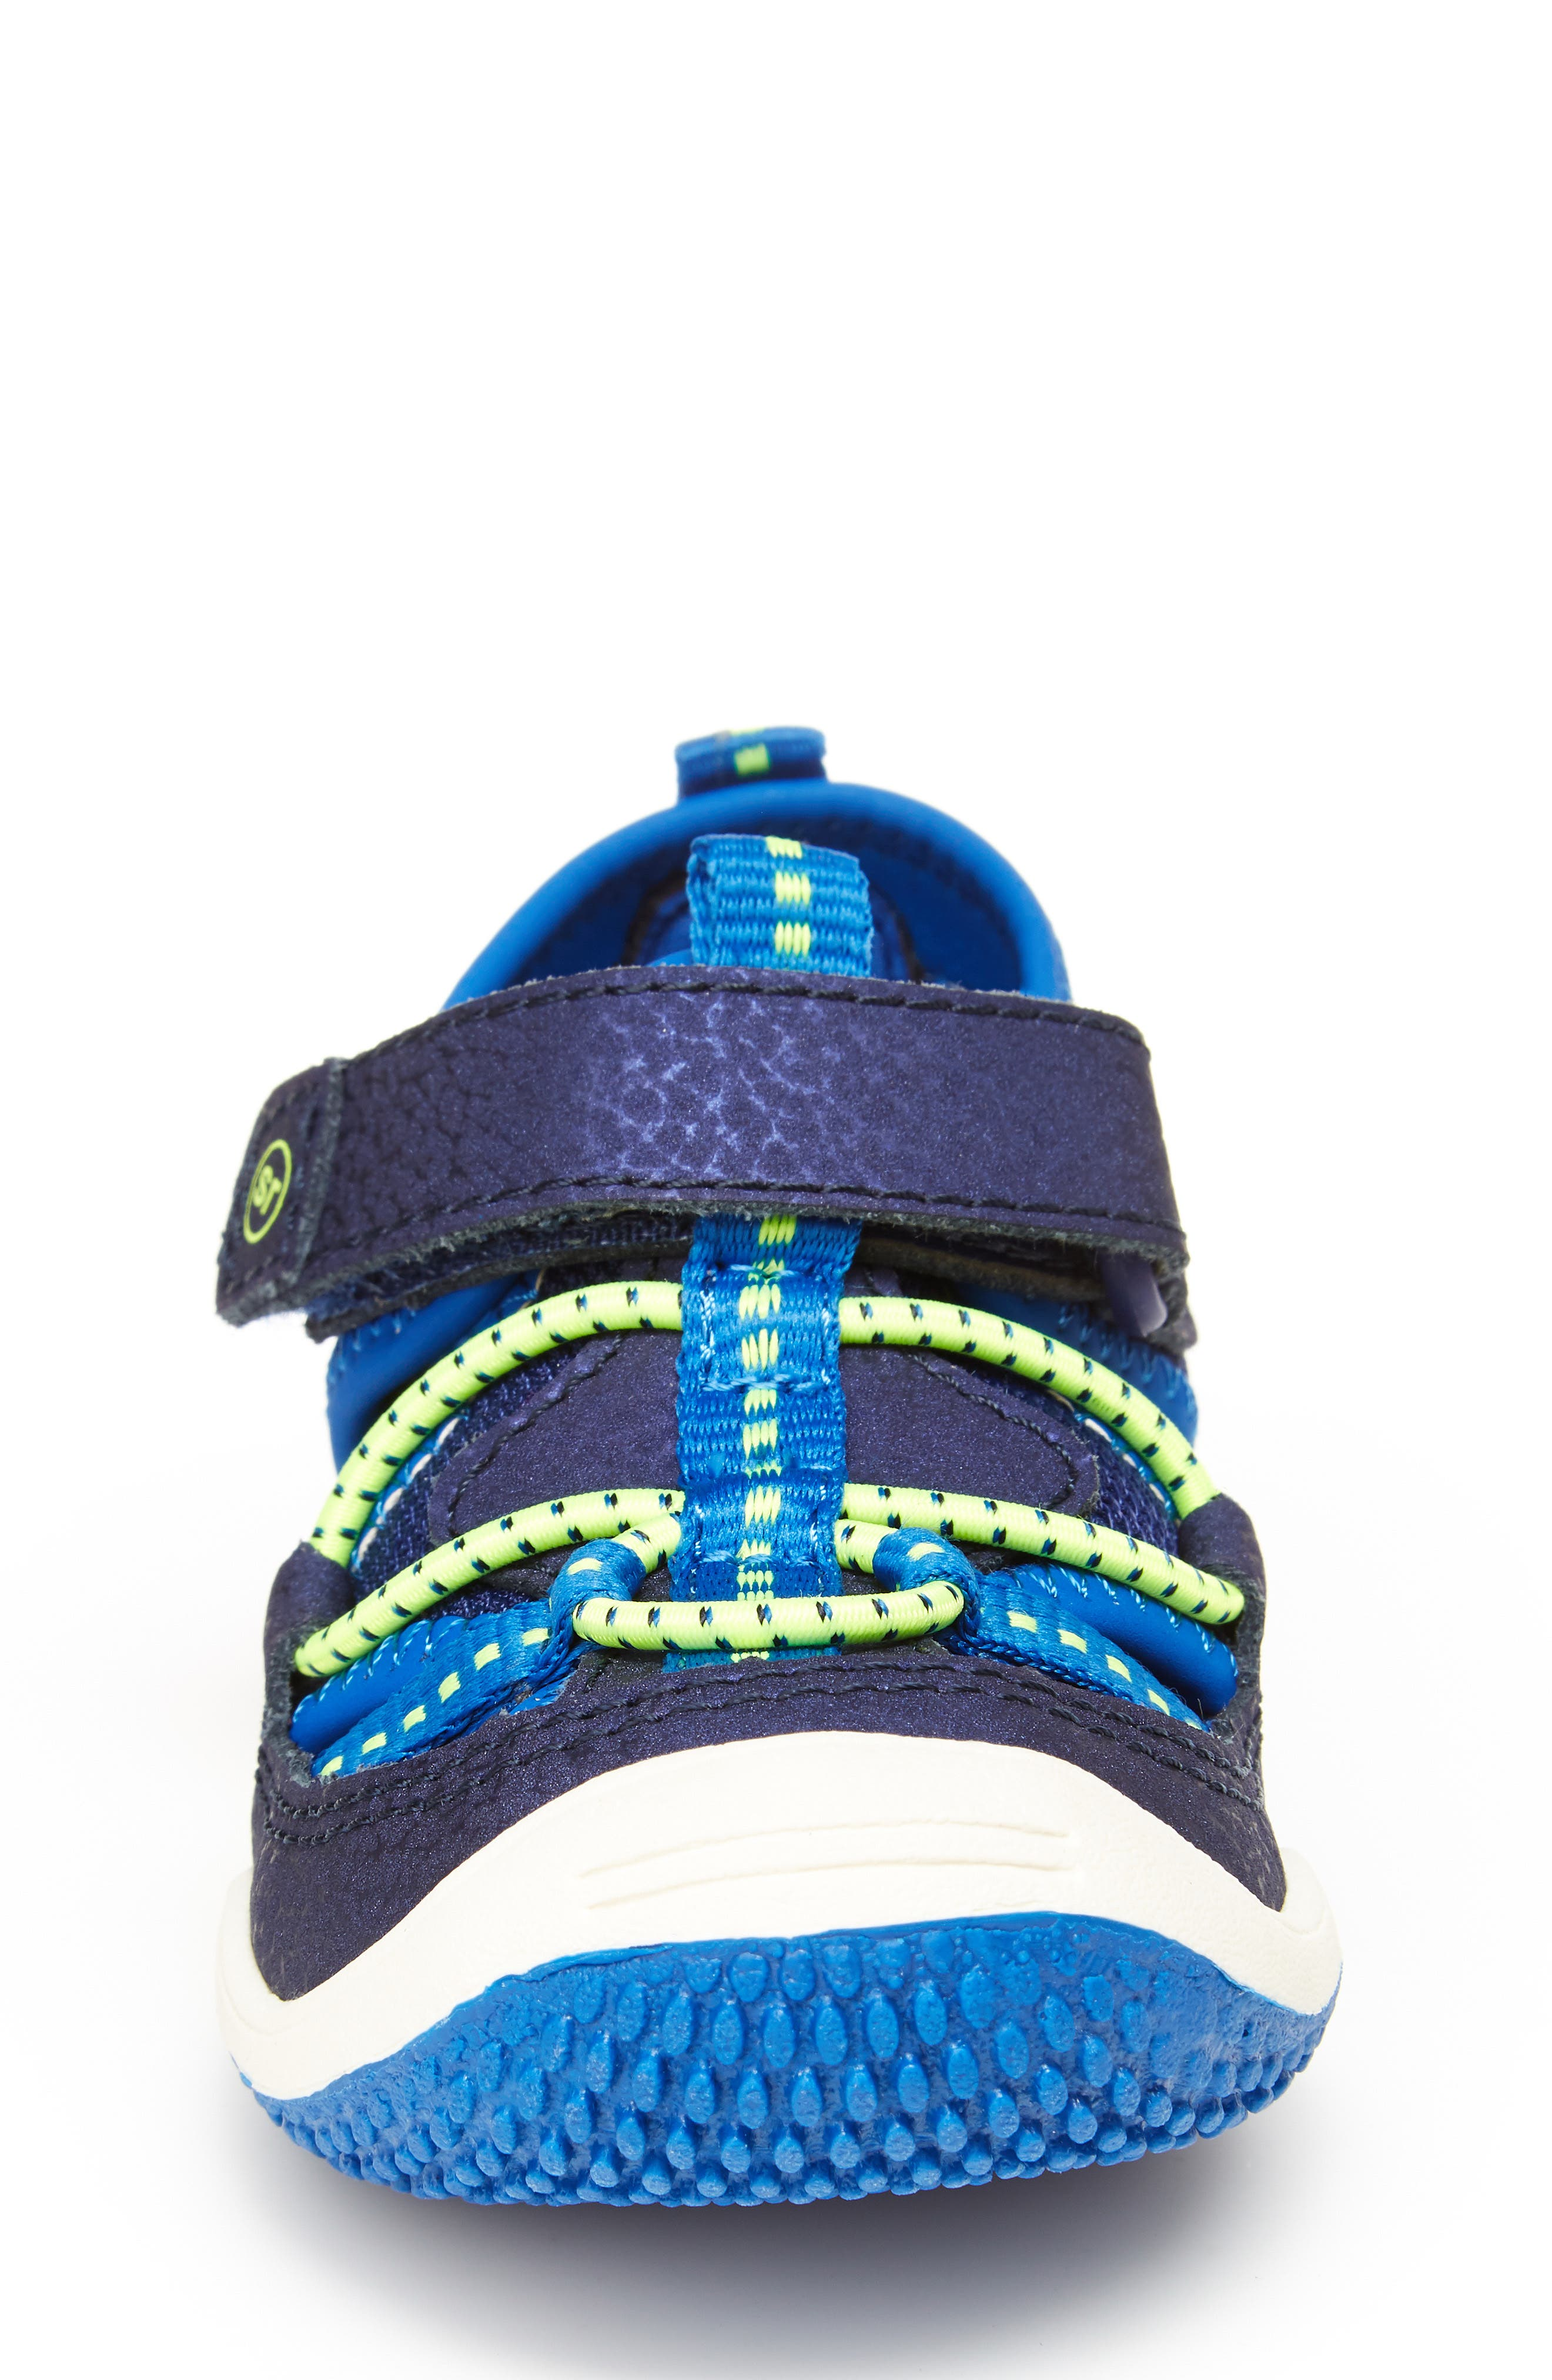 STRIDE RITE,                             Marina Water Sandal,                             Alternate thumbnail 3, color,                             ELECTRIC BLUE LEATHER/ TEXTILE